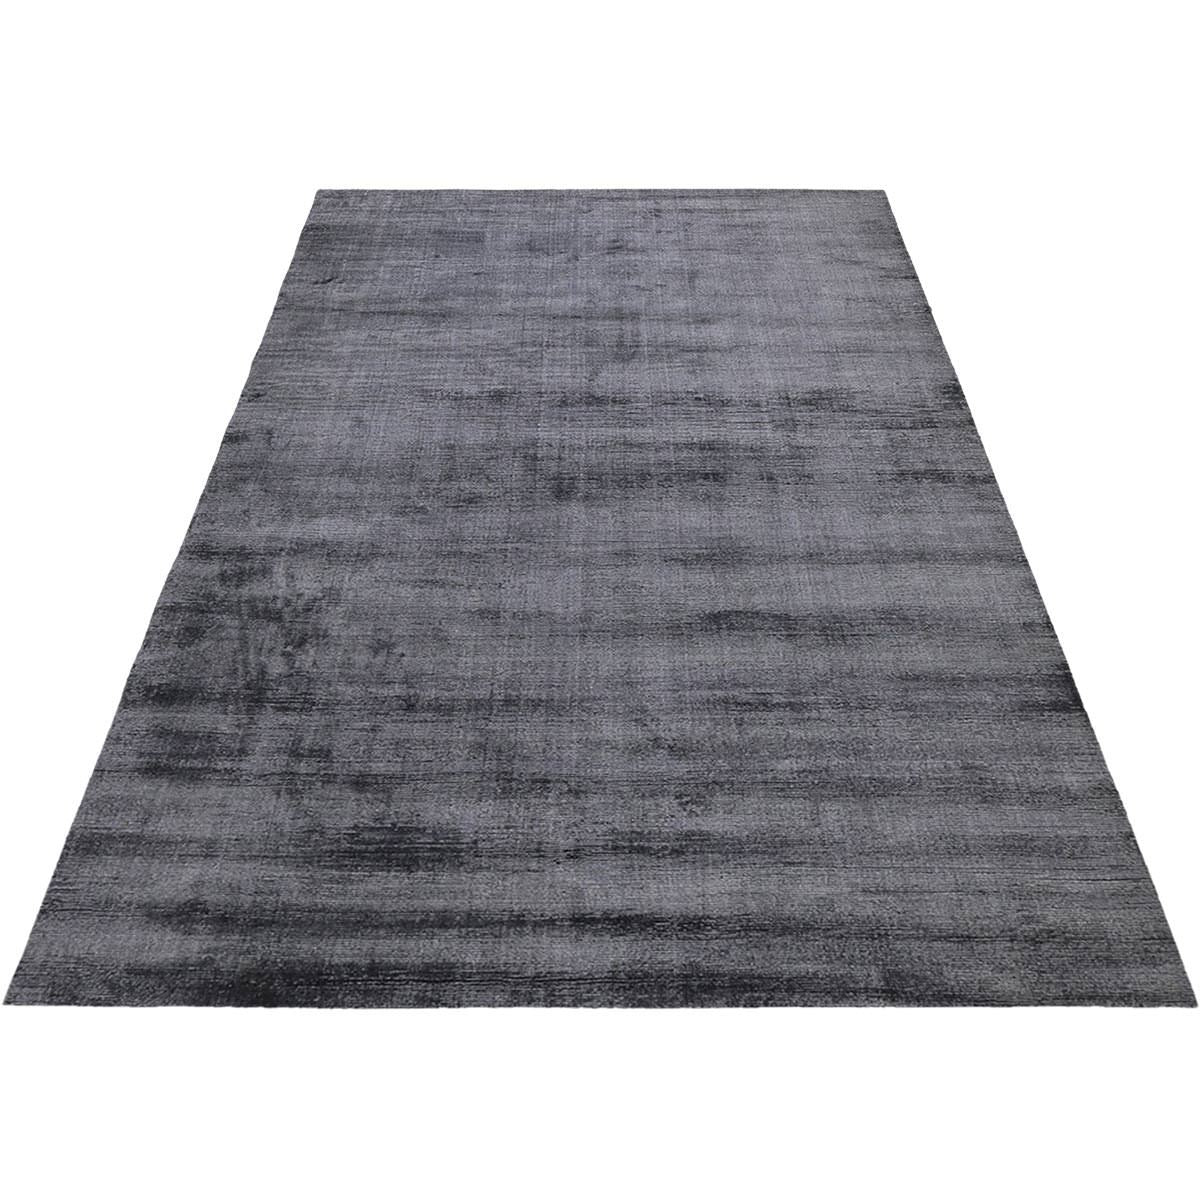 Tuscany Rug 01 Dark Grey 2